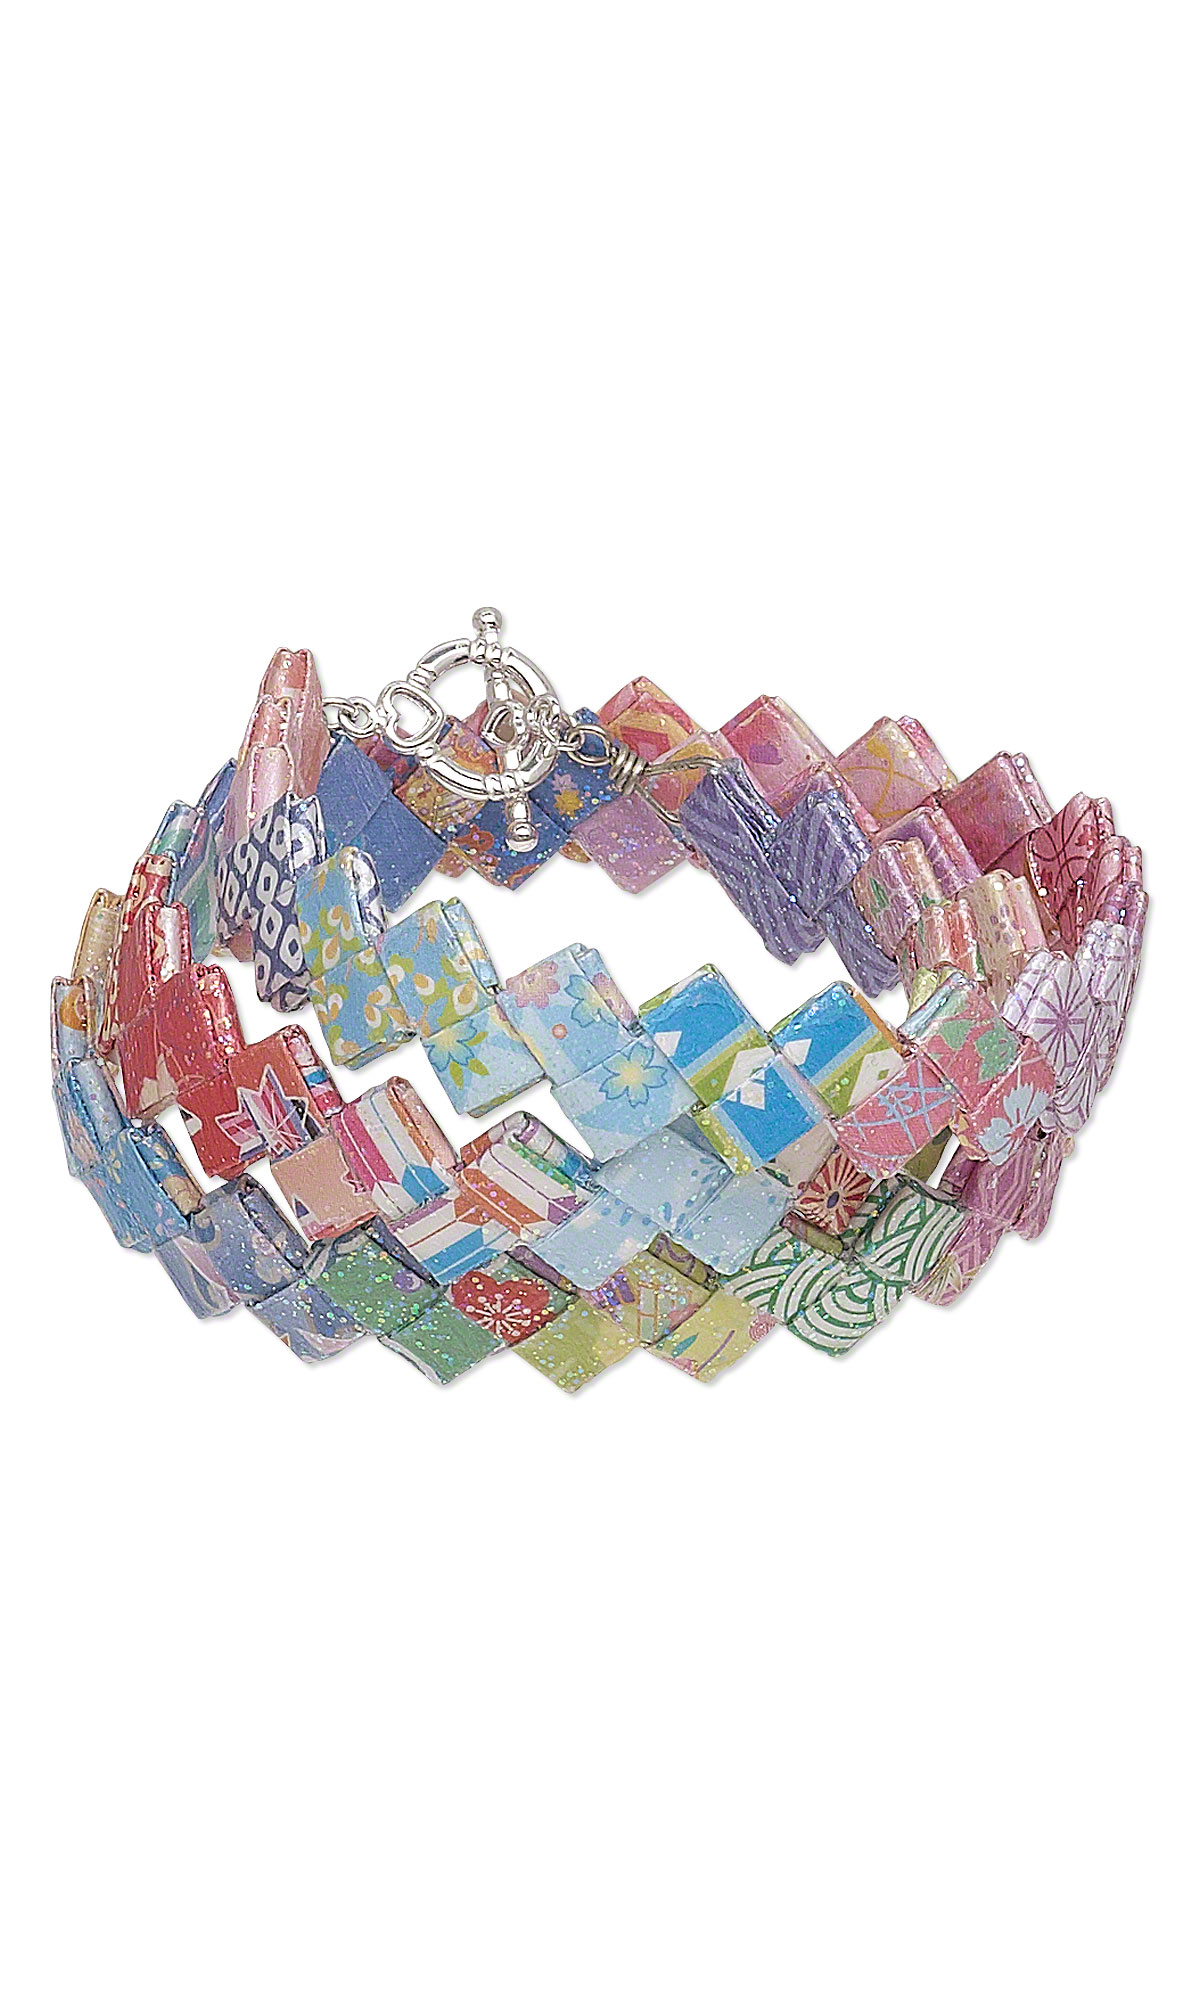 jewelry design bracelet with origami paper and mod podge